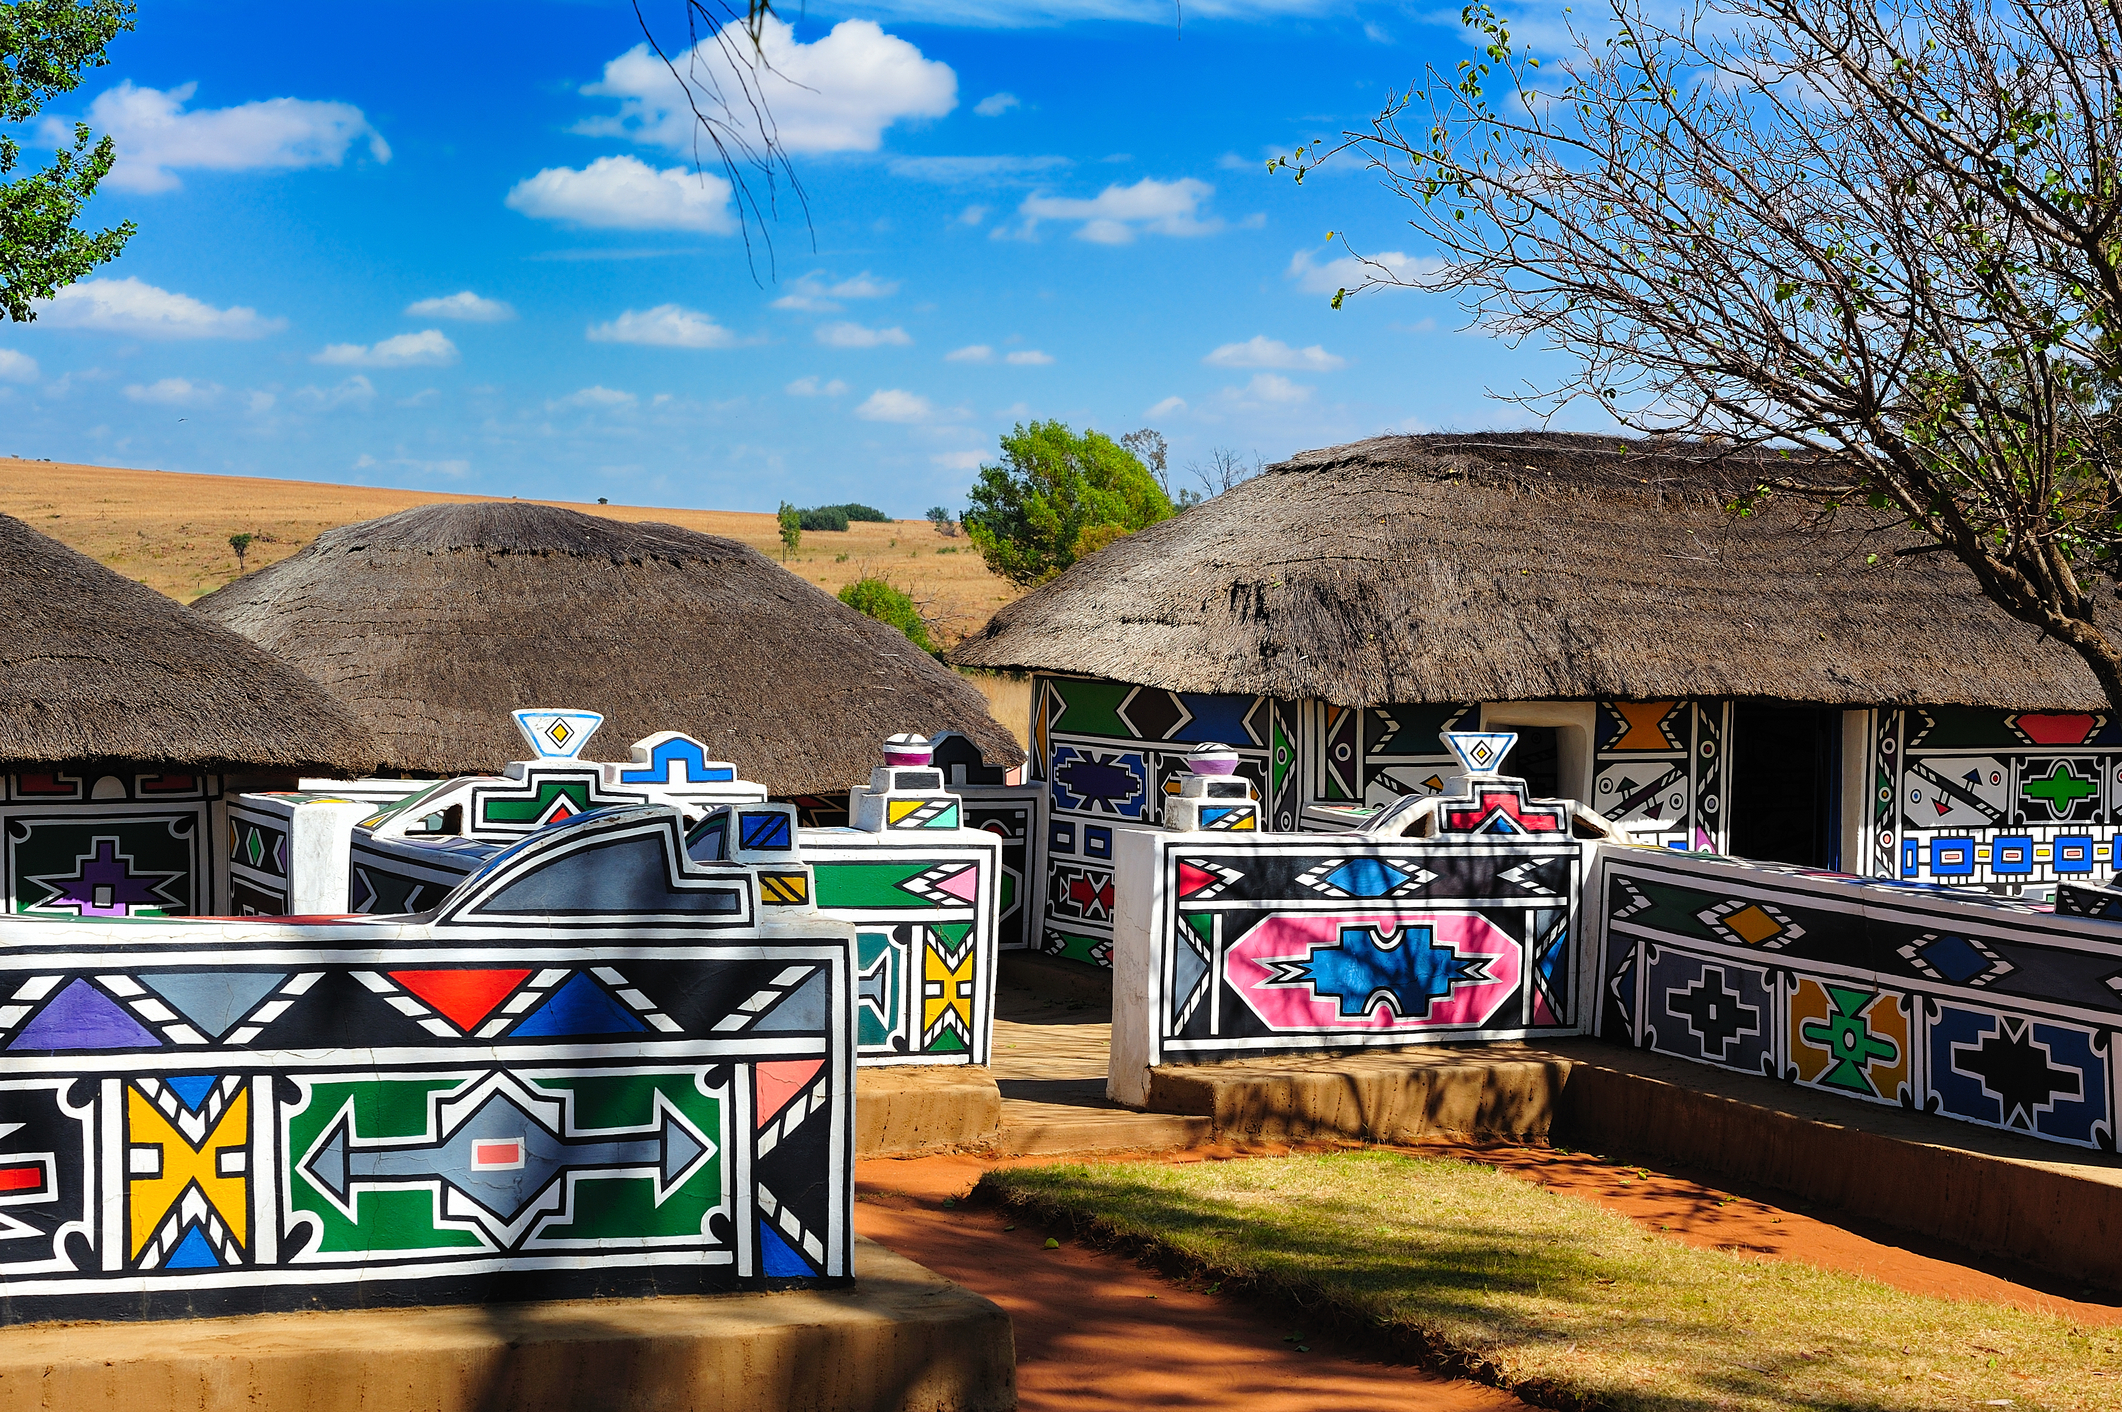 south africa as a tourist destination South africa has such diverse attractions and experiences on offer.